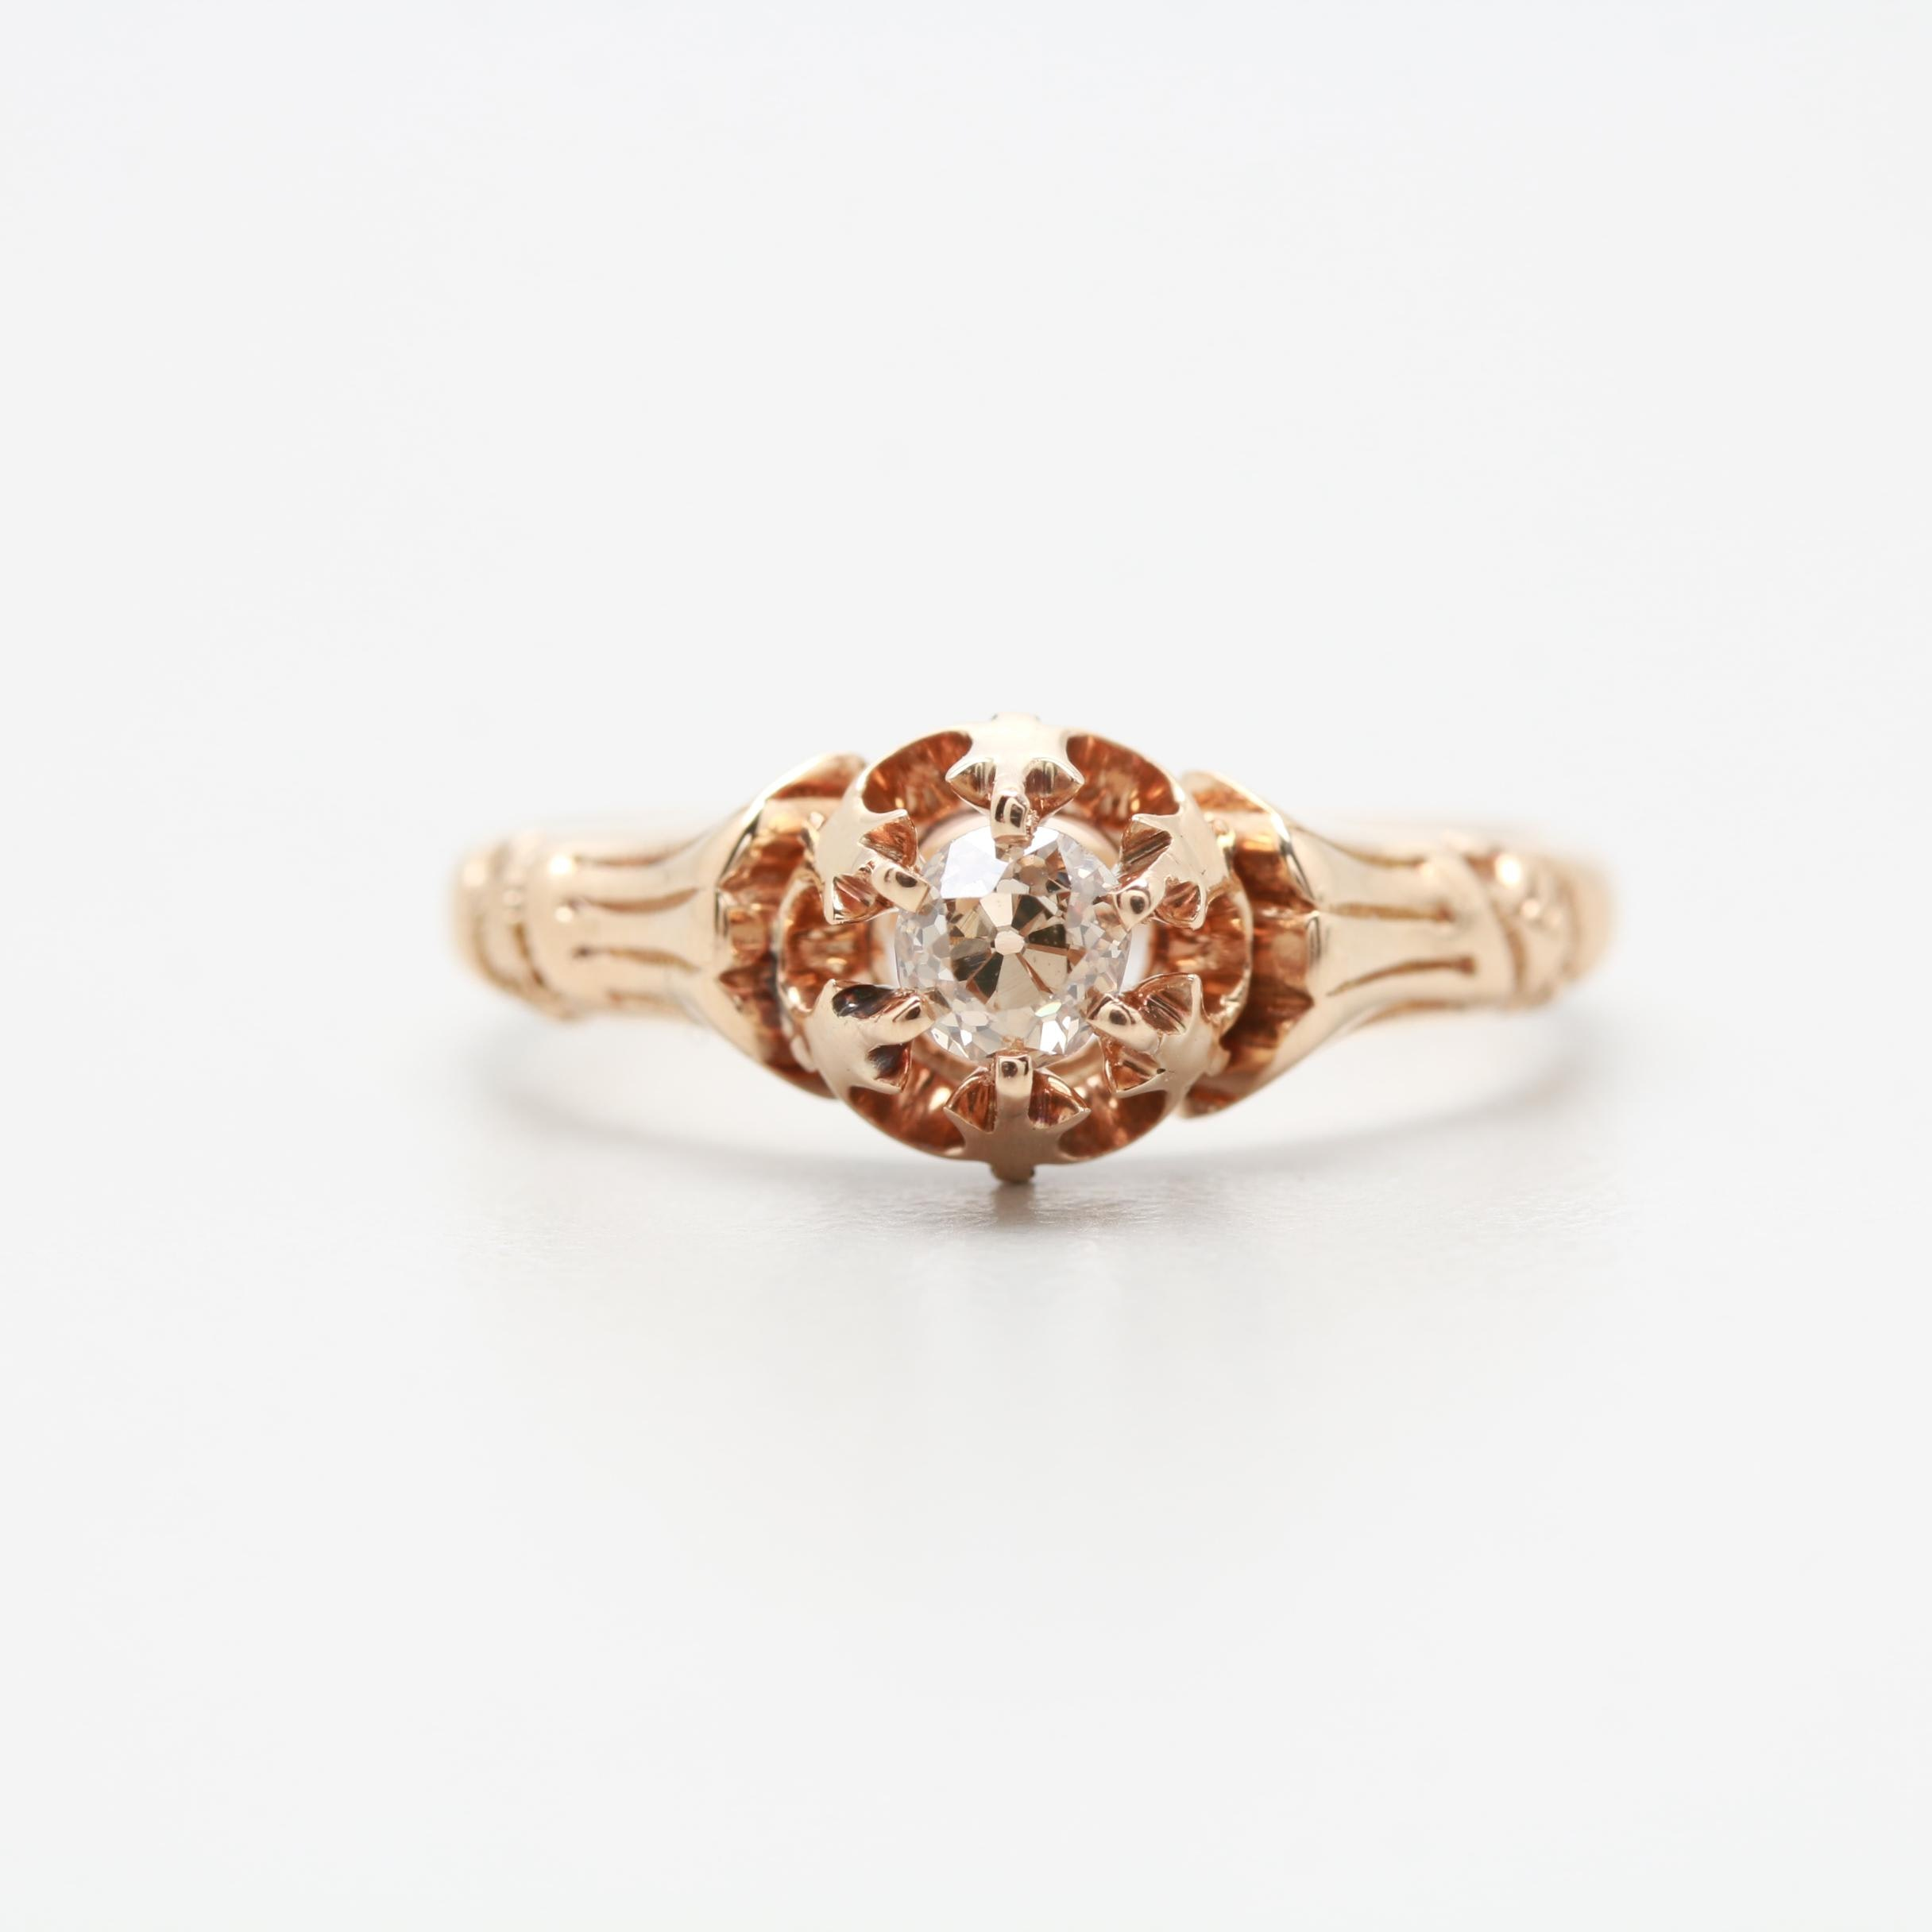 Circa 1900 Late Victorian 14K Rose Gold Diamond Ring